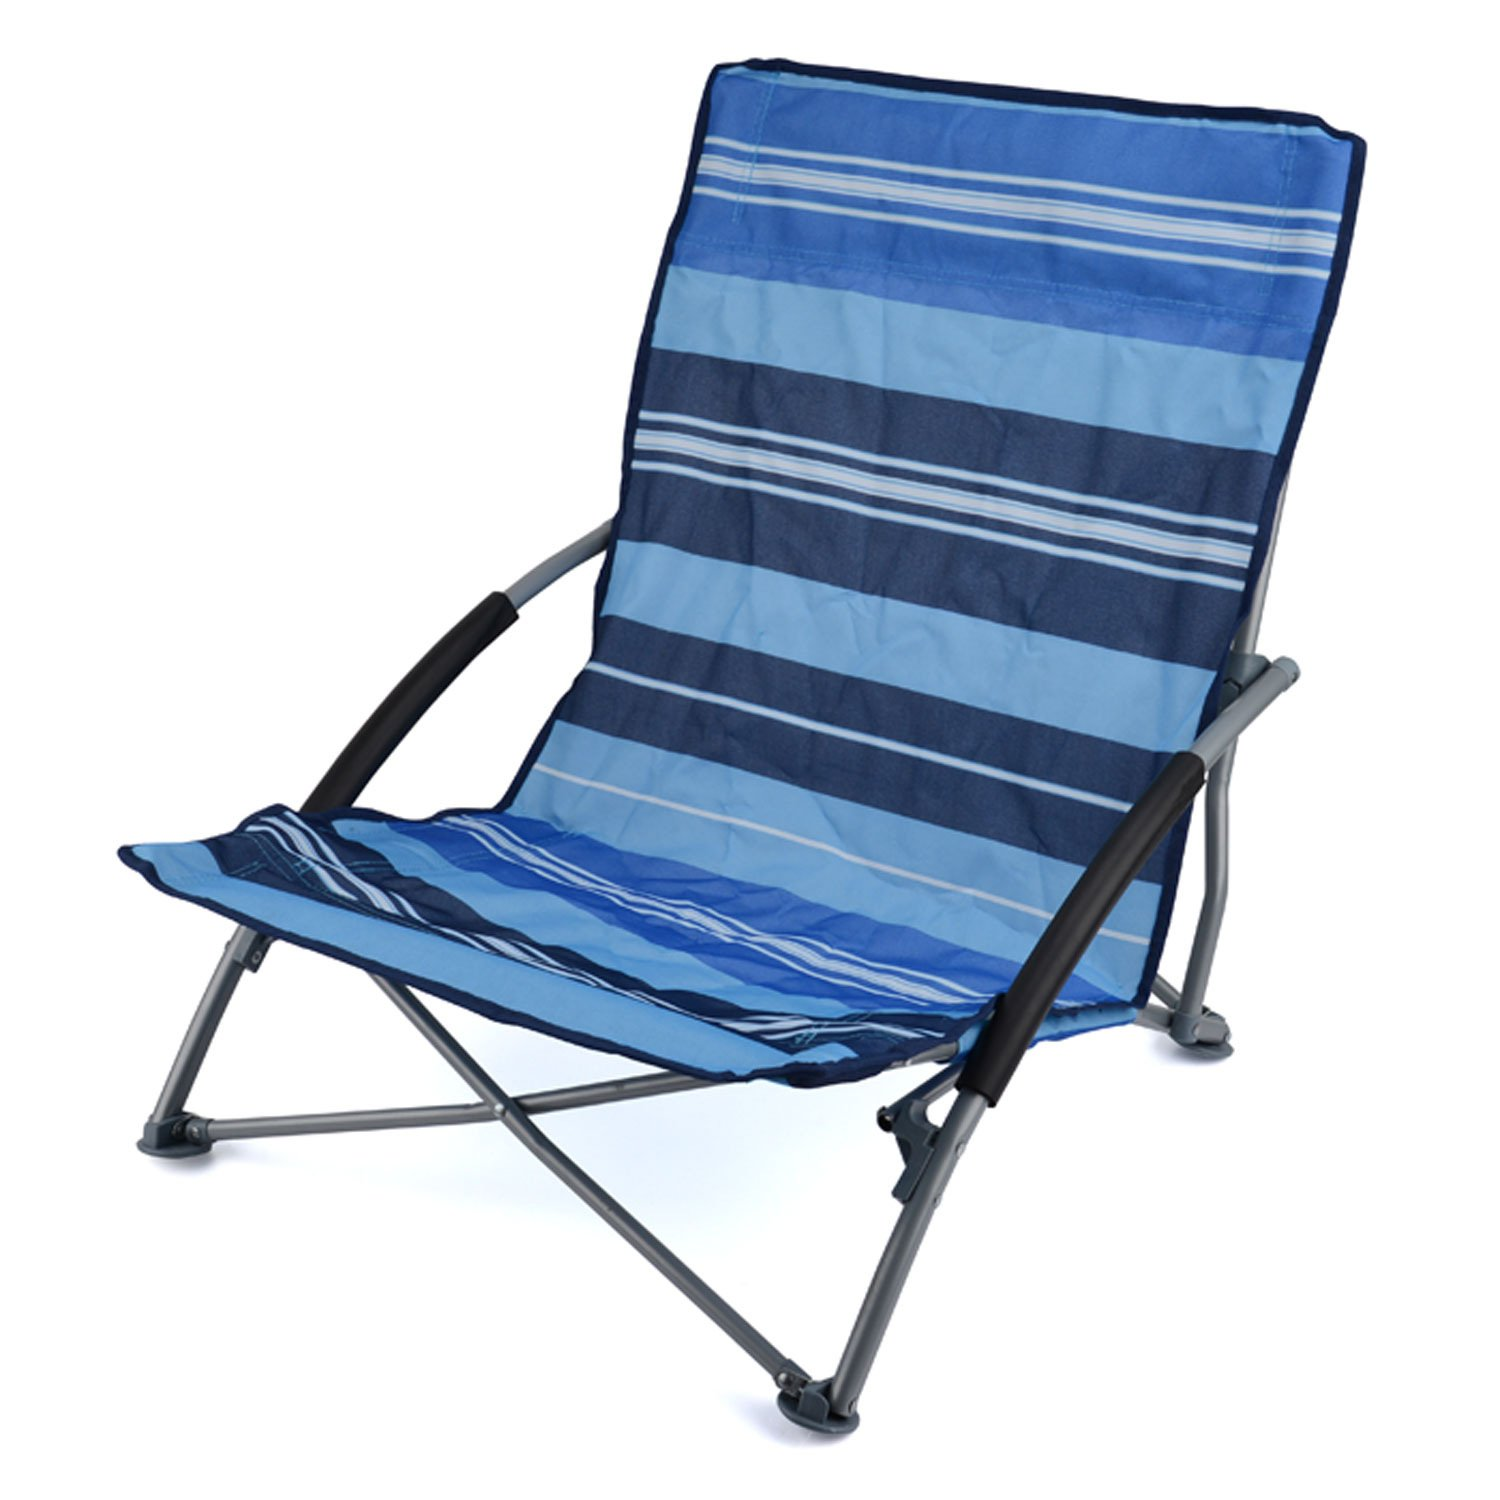 sc 1 st  Flipboard & Top 10 Best Beach Chairs For Summer 2018-2019 on Flipboard